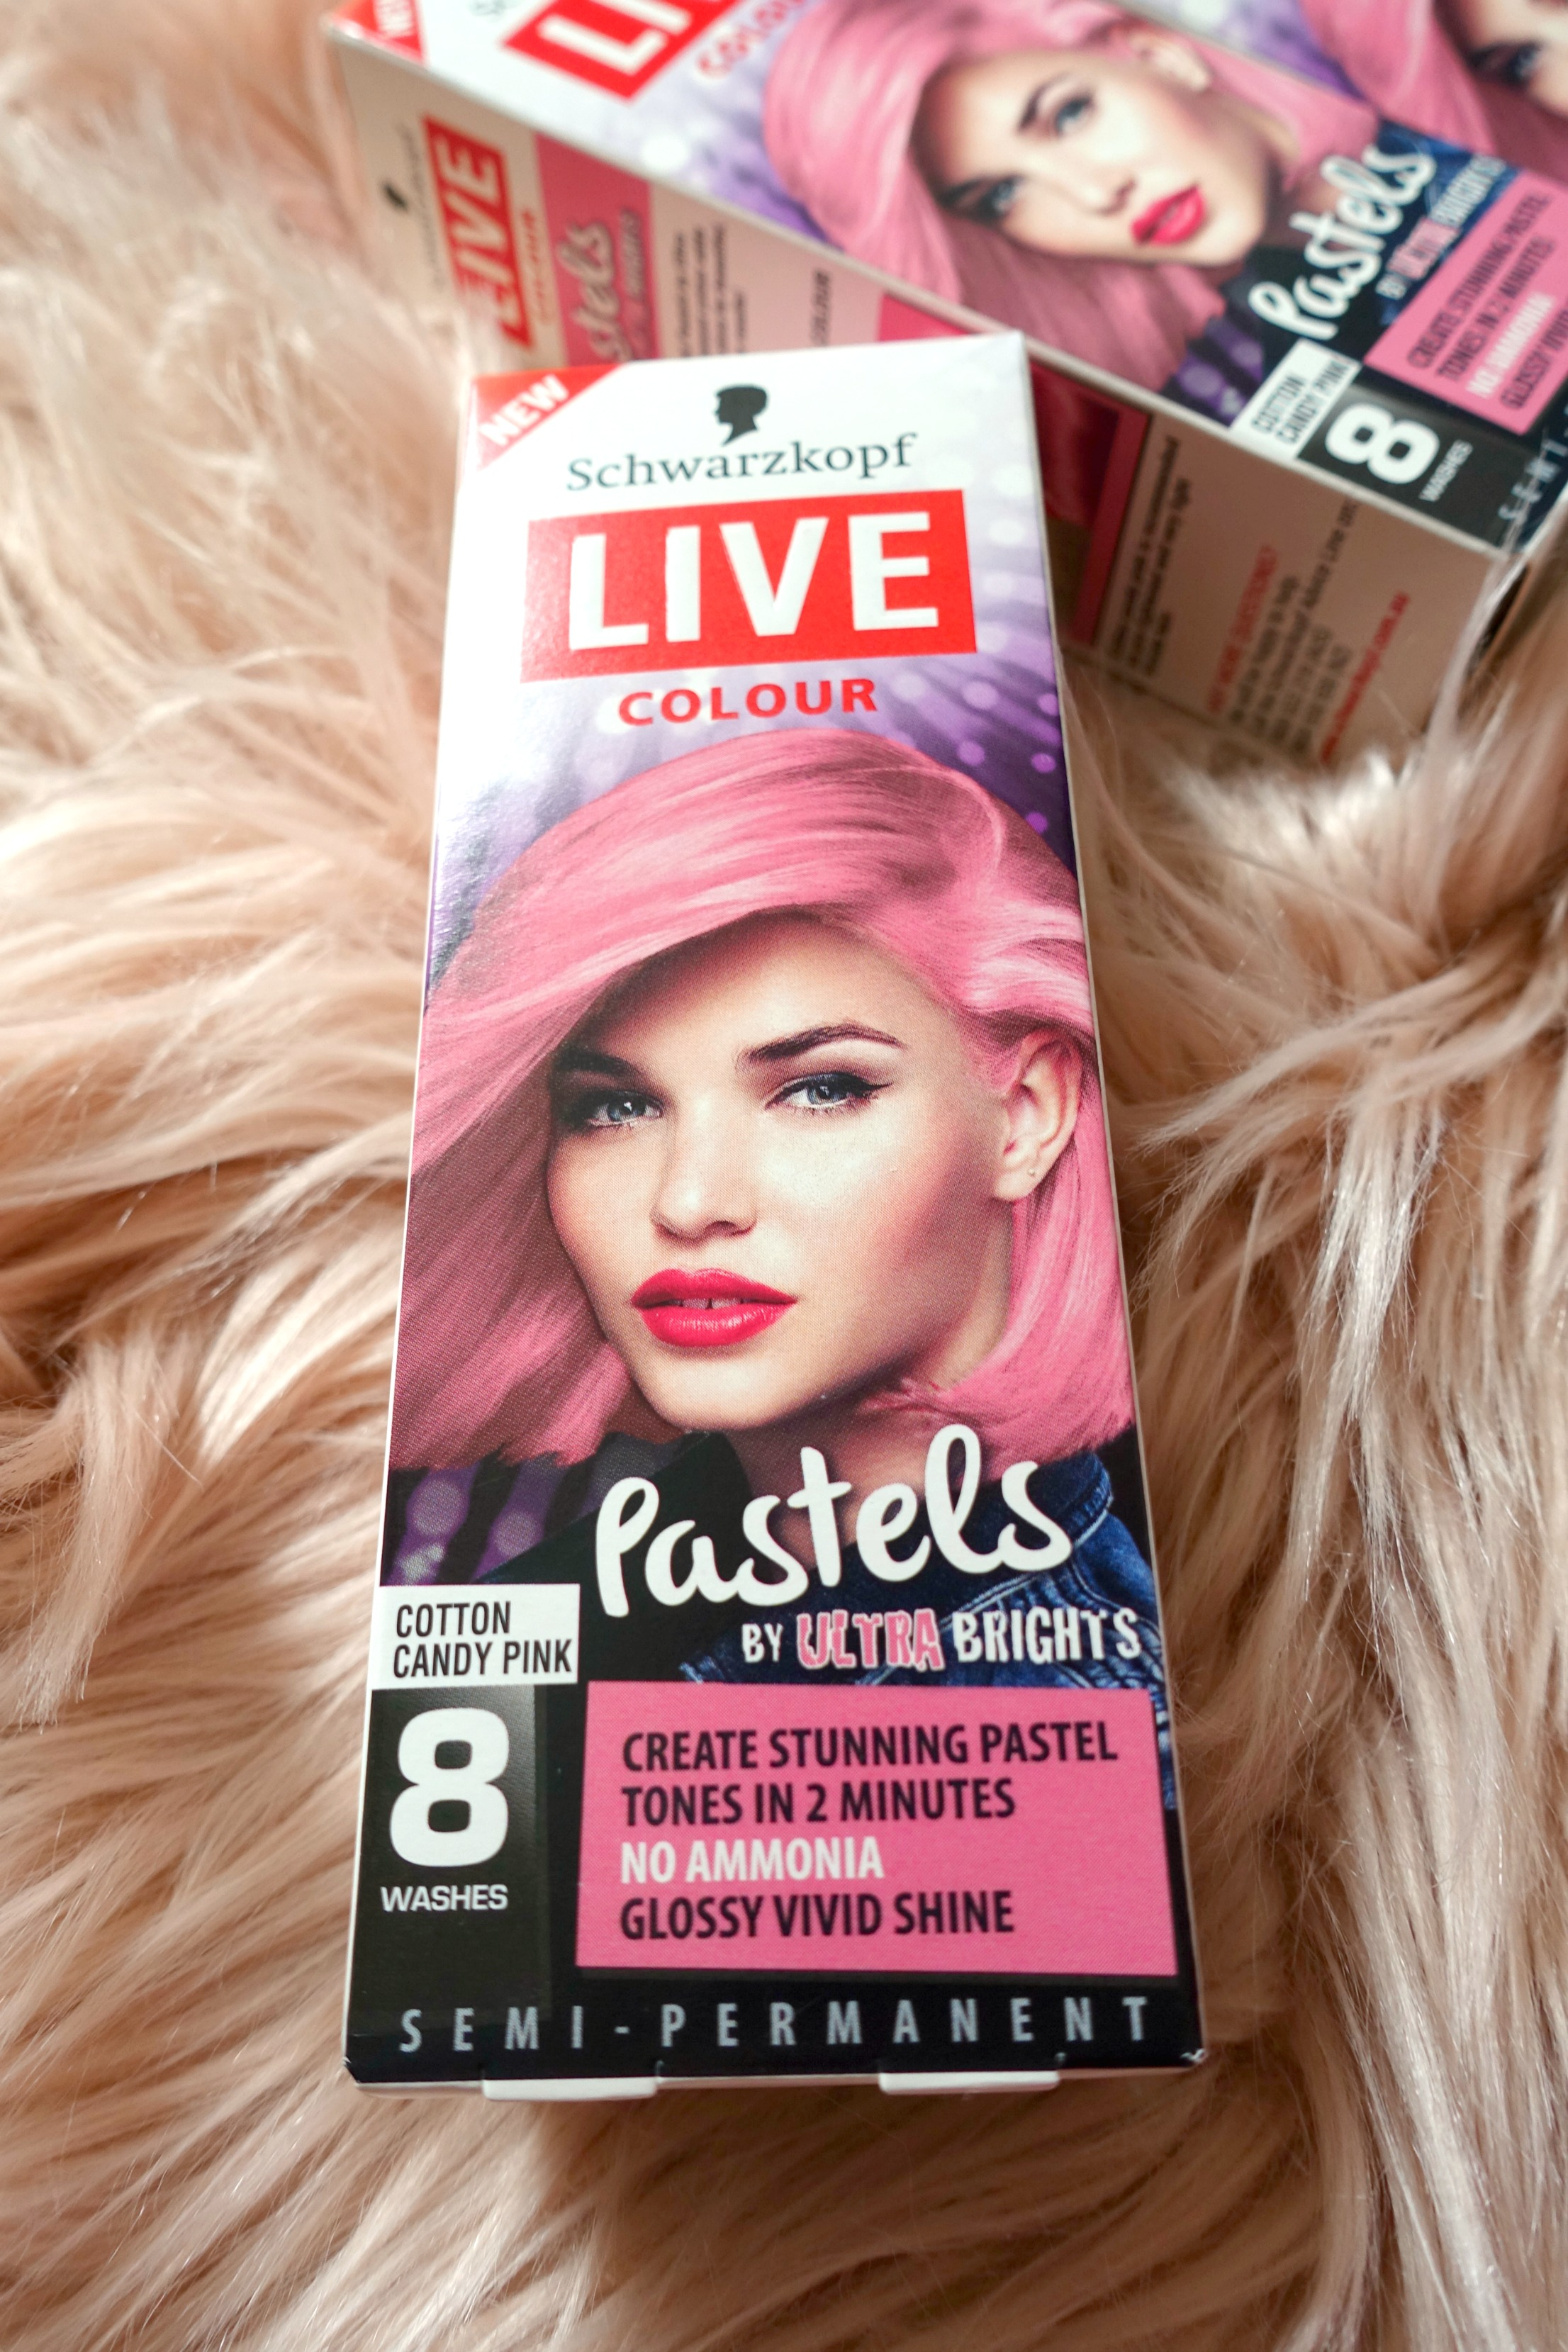 Schwarzkopf Live Colour Pastels Review A Red Lip And A Nude Shoe